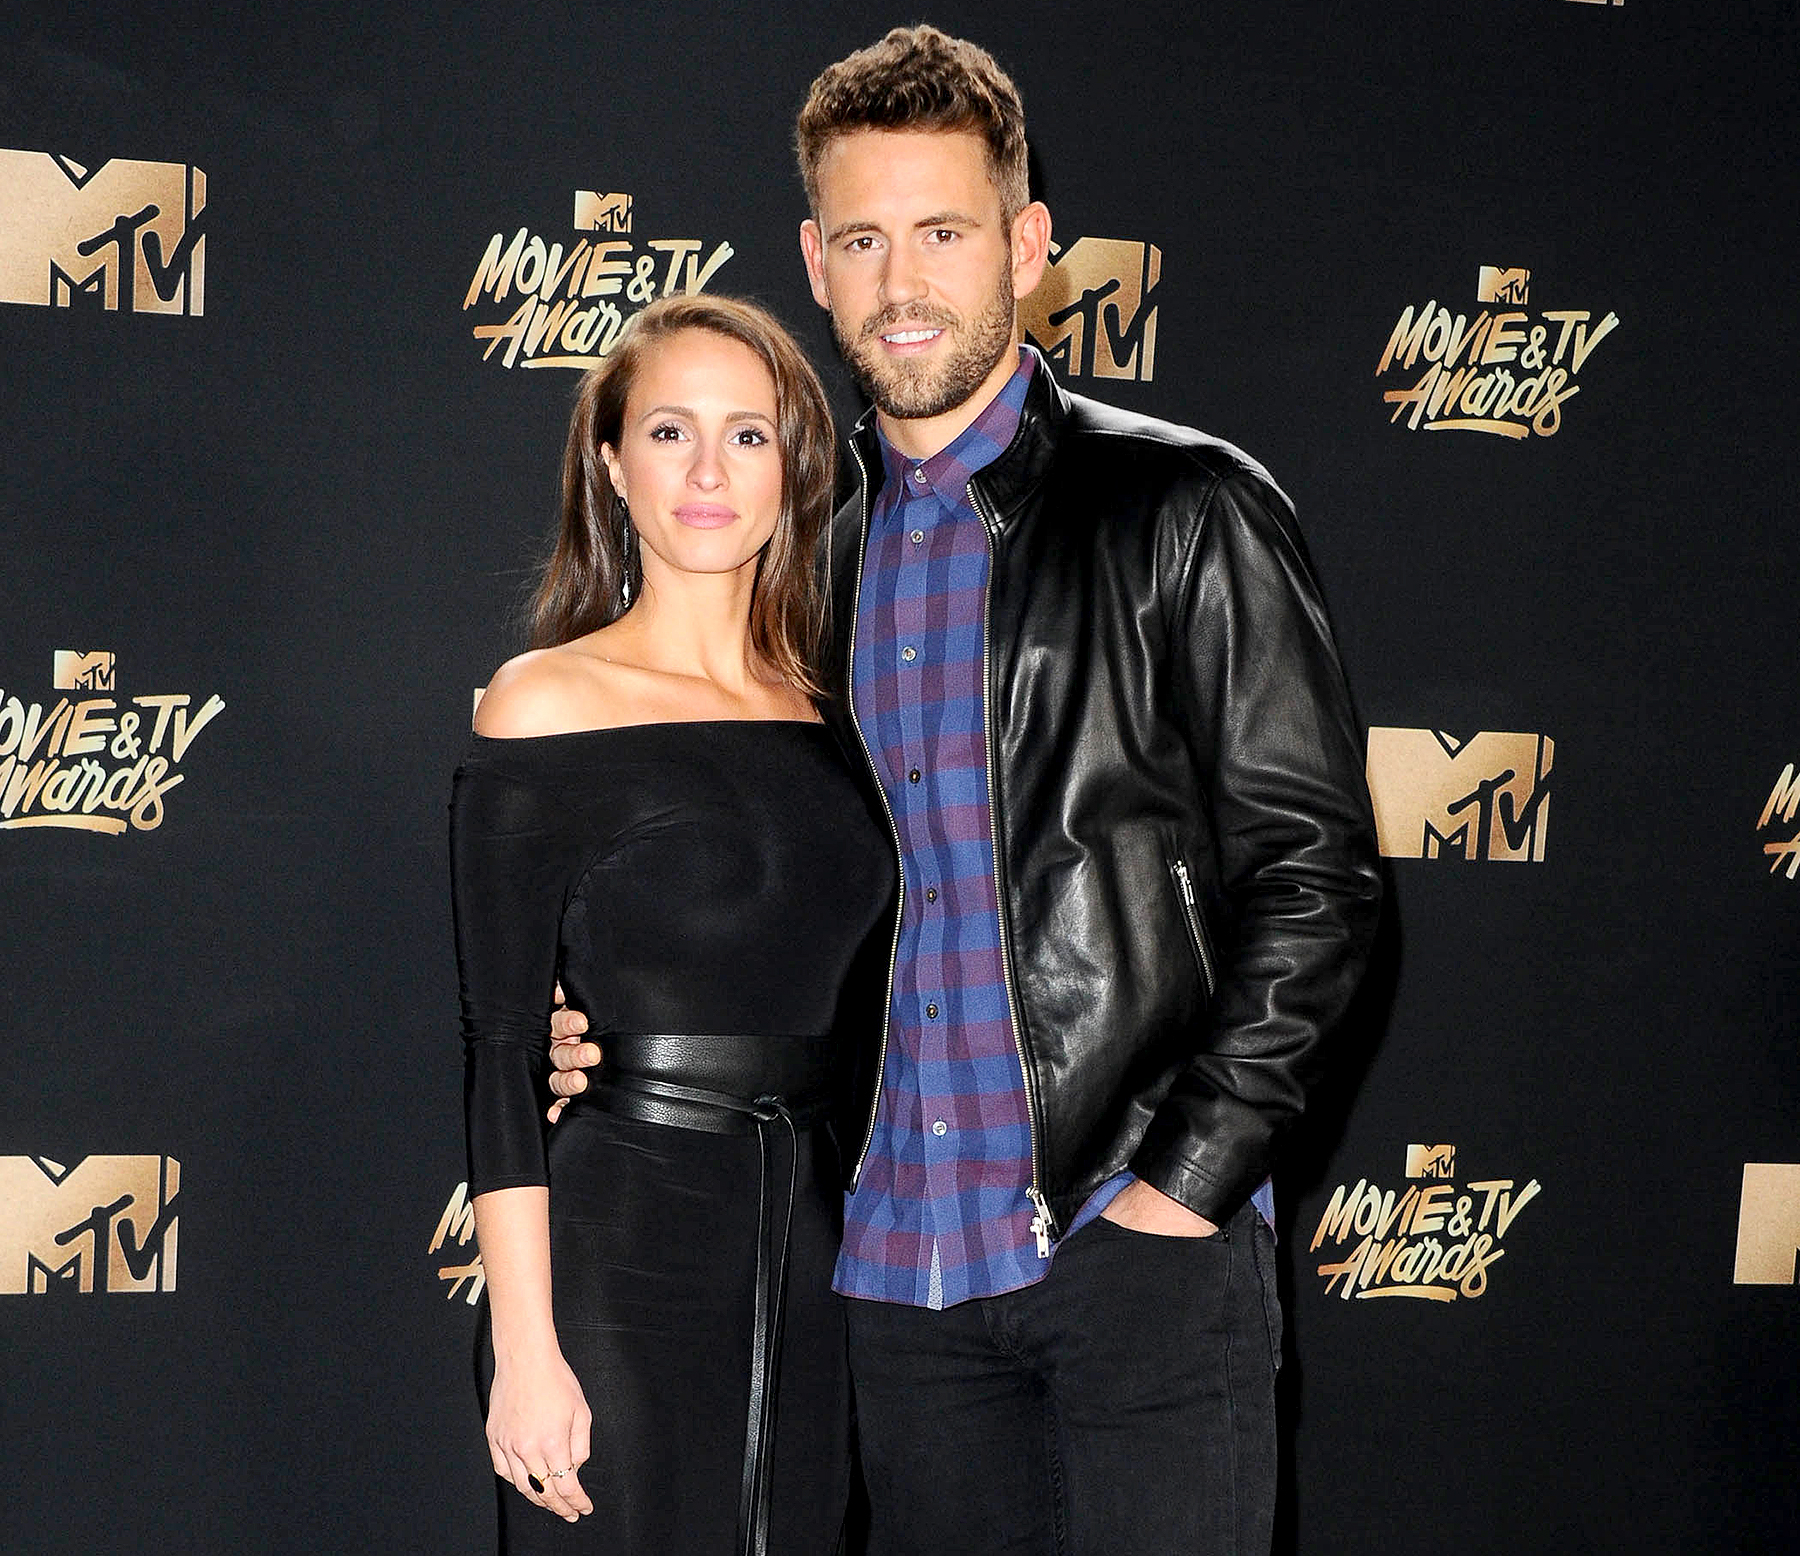 Vanessa Grimaldi and Nick Viall attend the 2017 MTV Movie & TV Awards at the Shrine Auditorium on May 7, 2017.